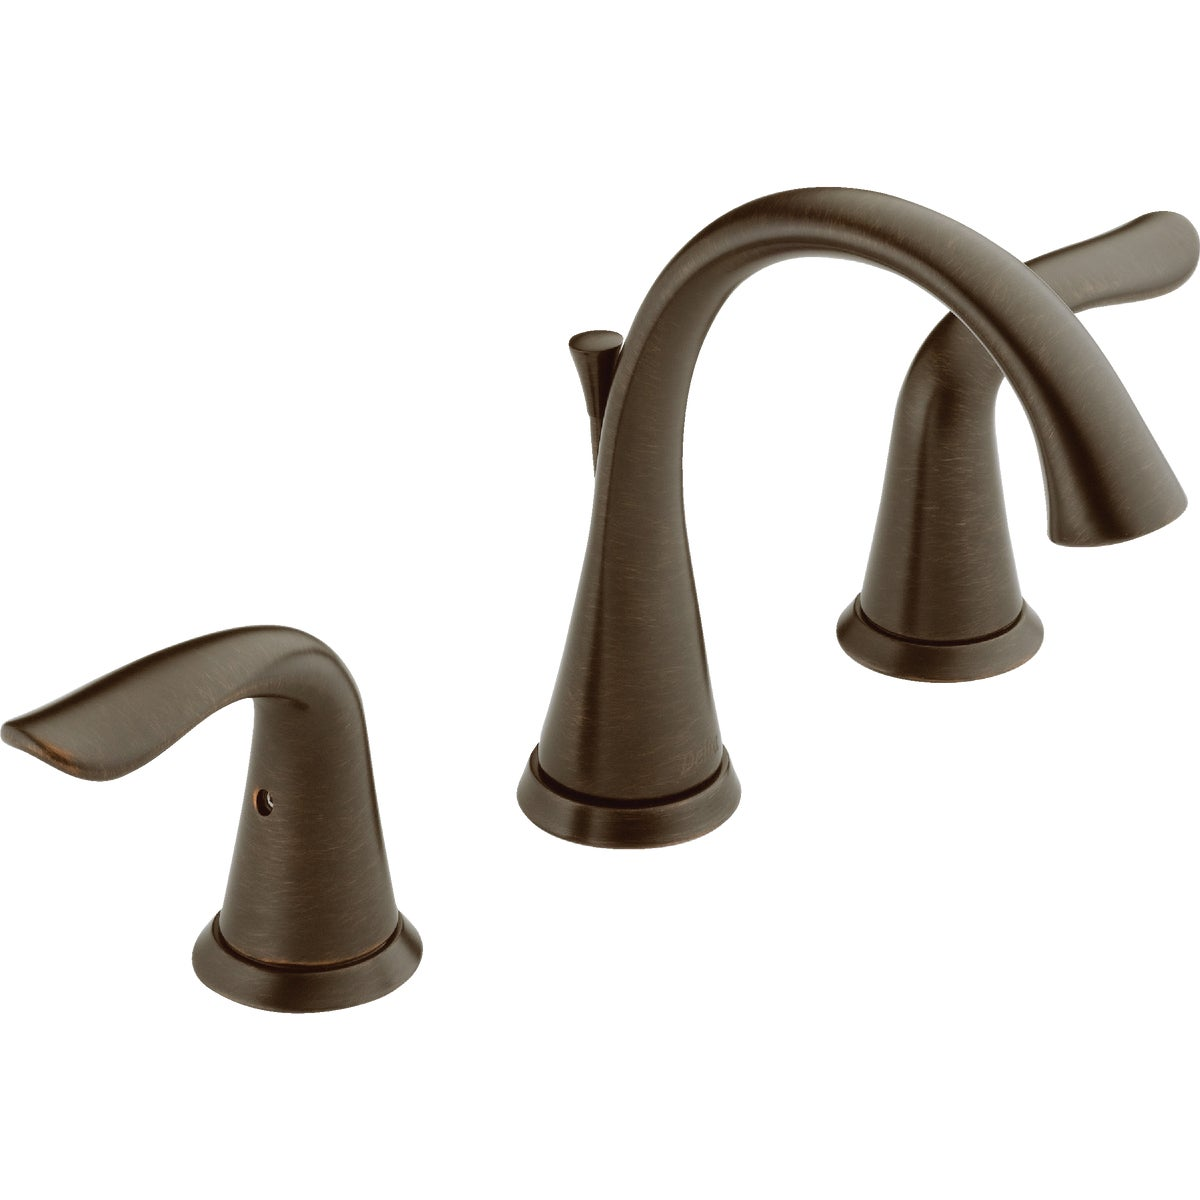 2H RB LAV FAUCET W/POPUP - 3538-RBMPU-DST by Delta Faucet Co